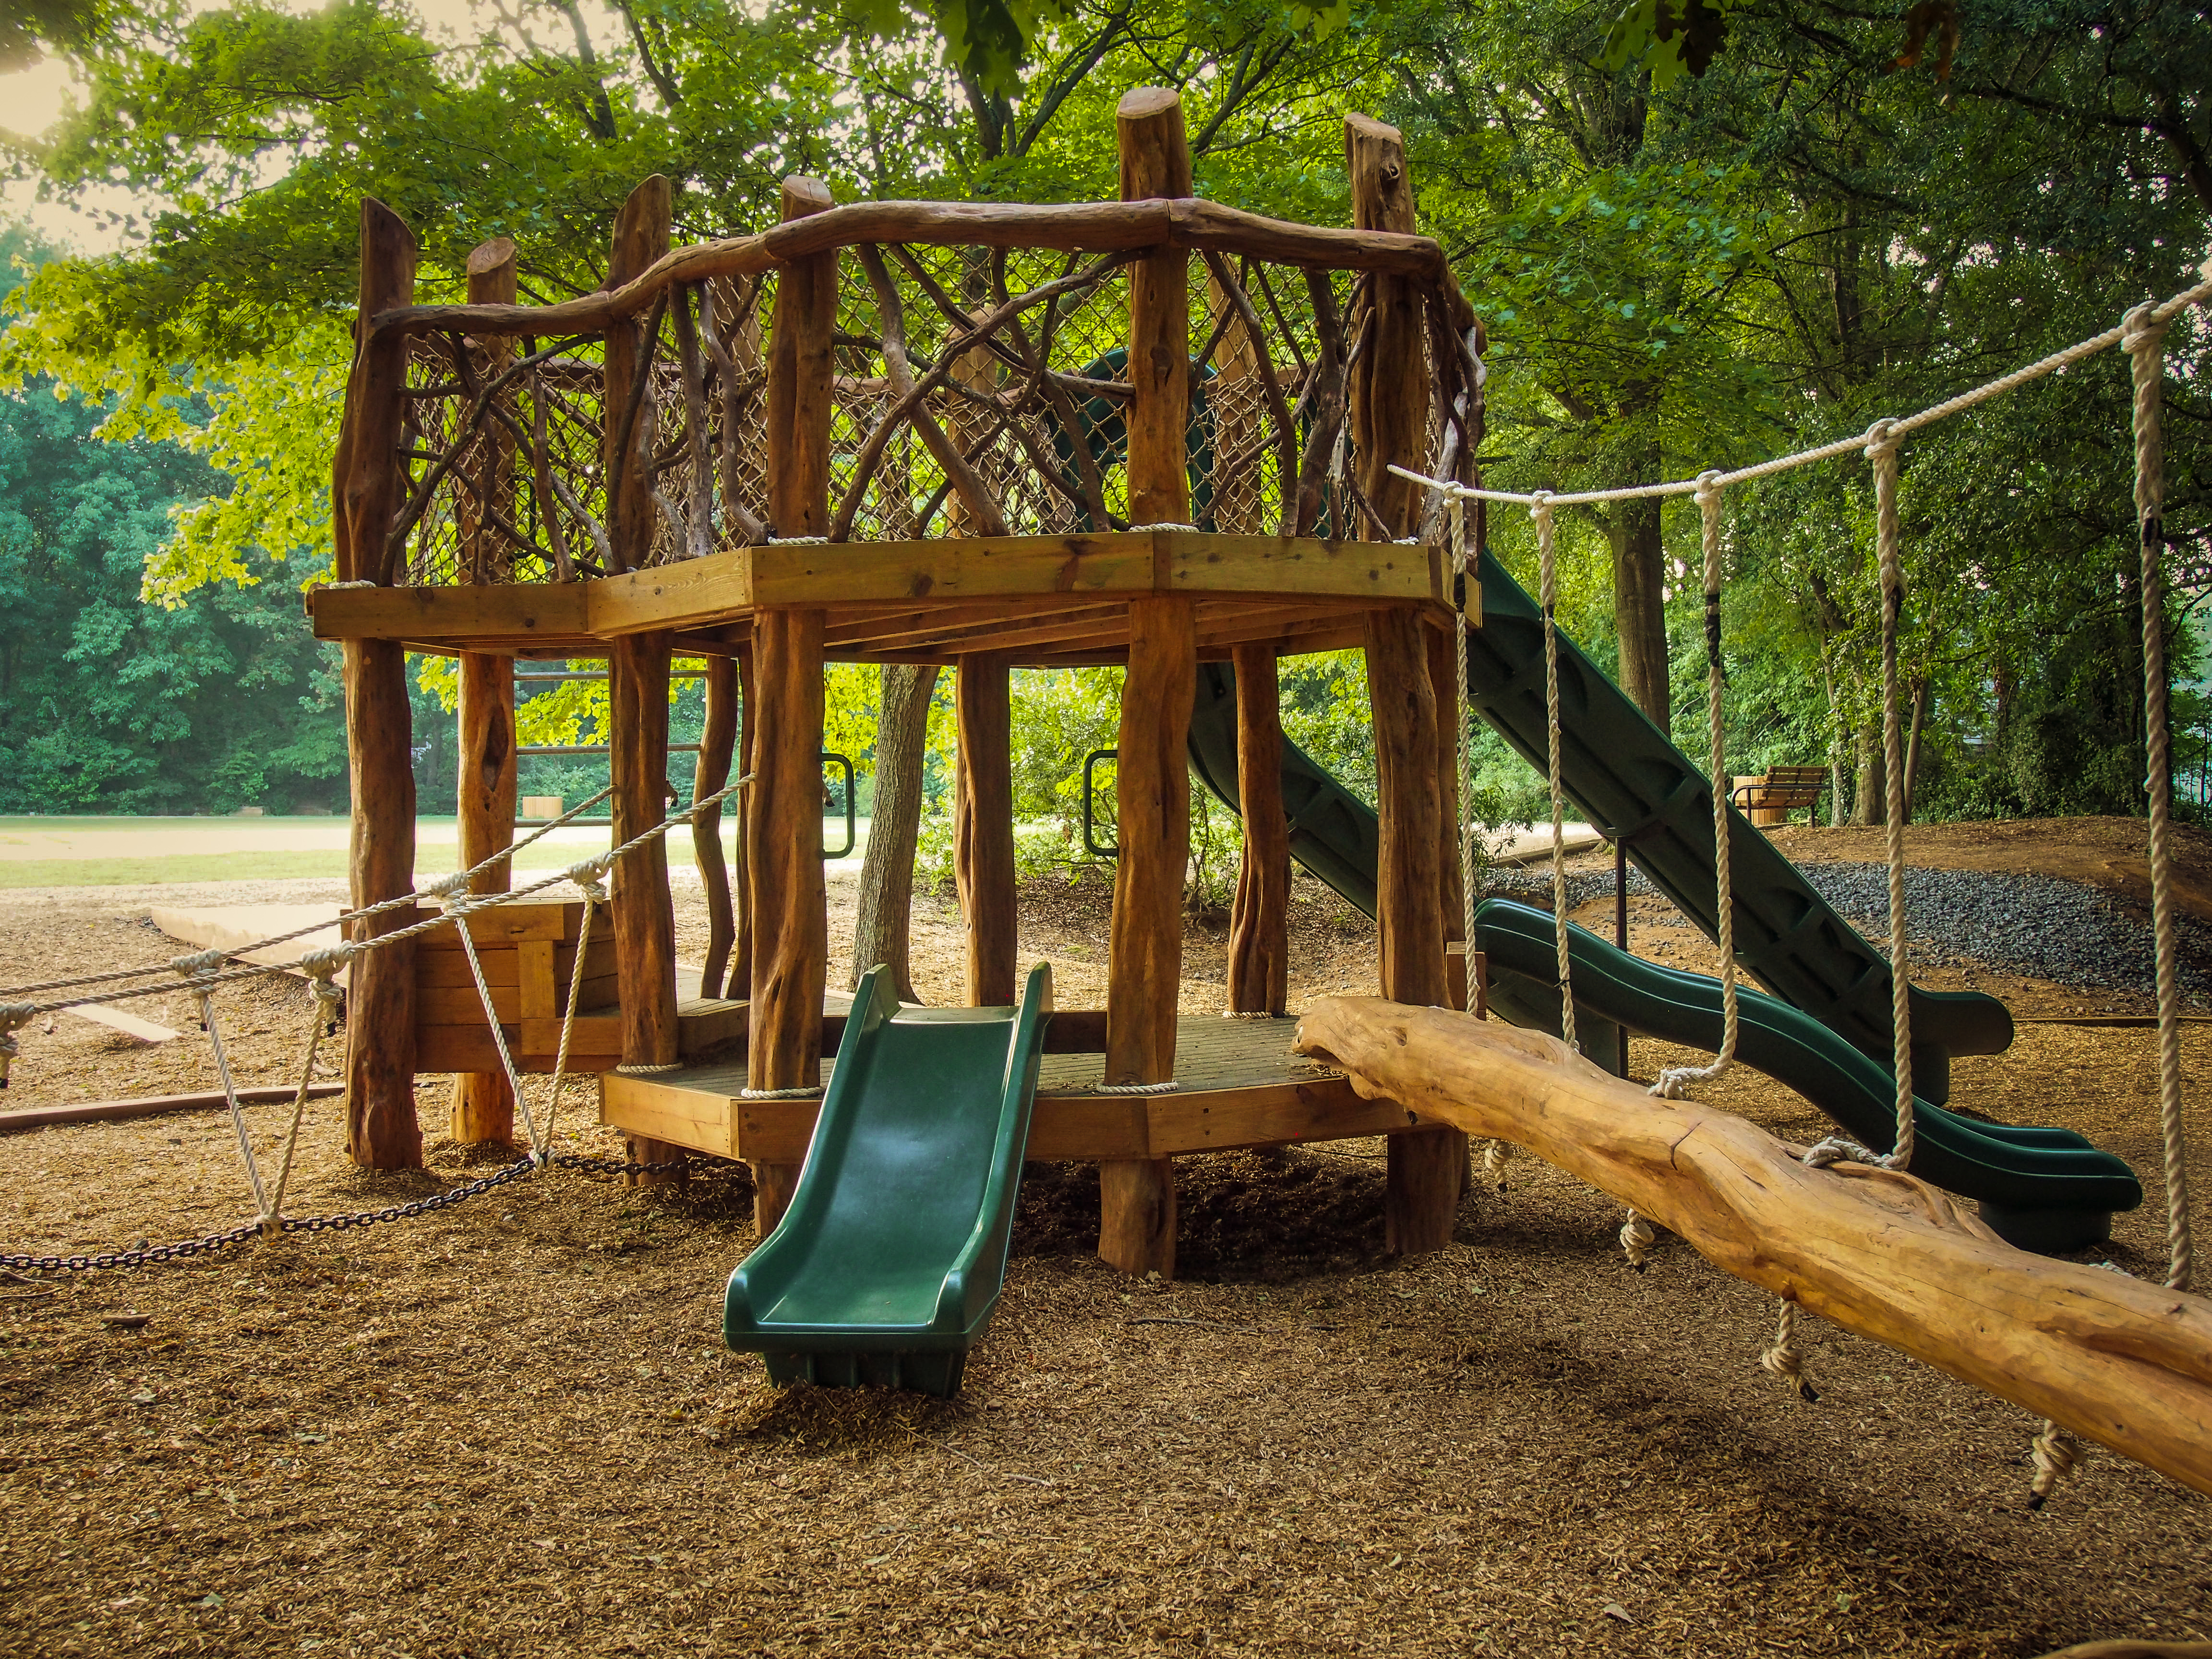 low ropes playground